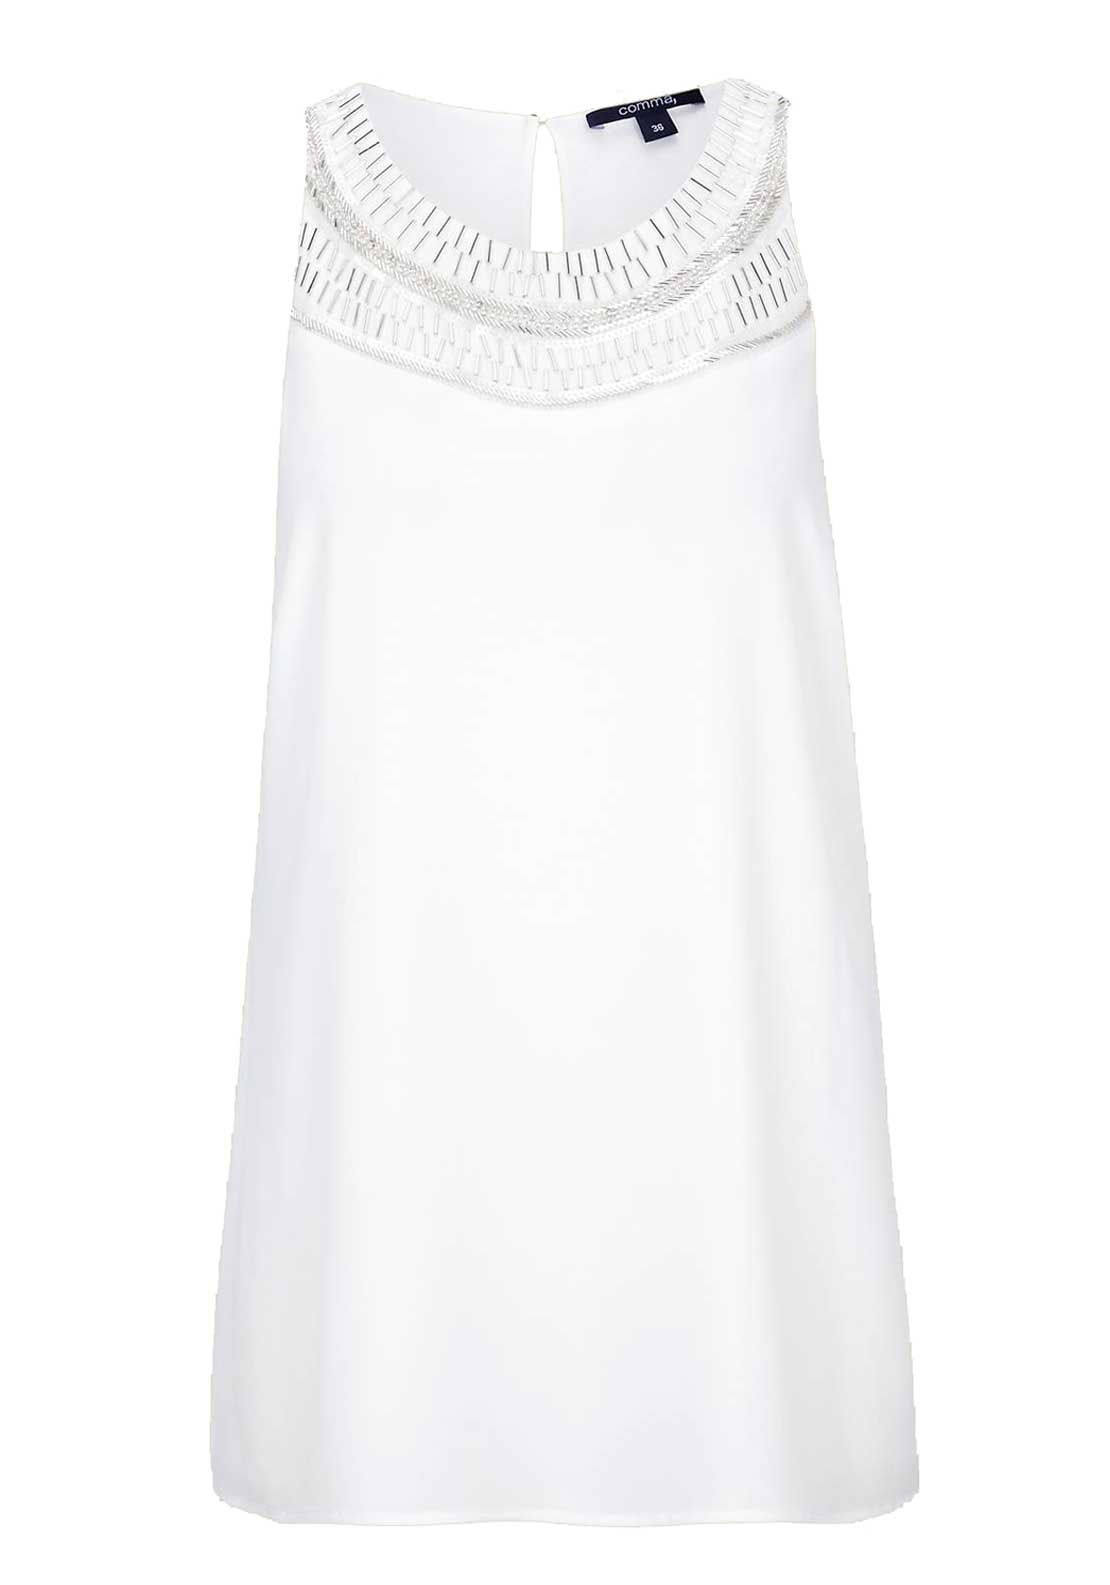 Comma Embellished Sleeveless Top, Ivory